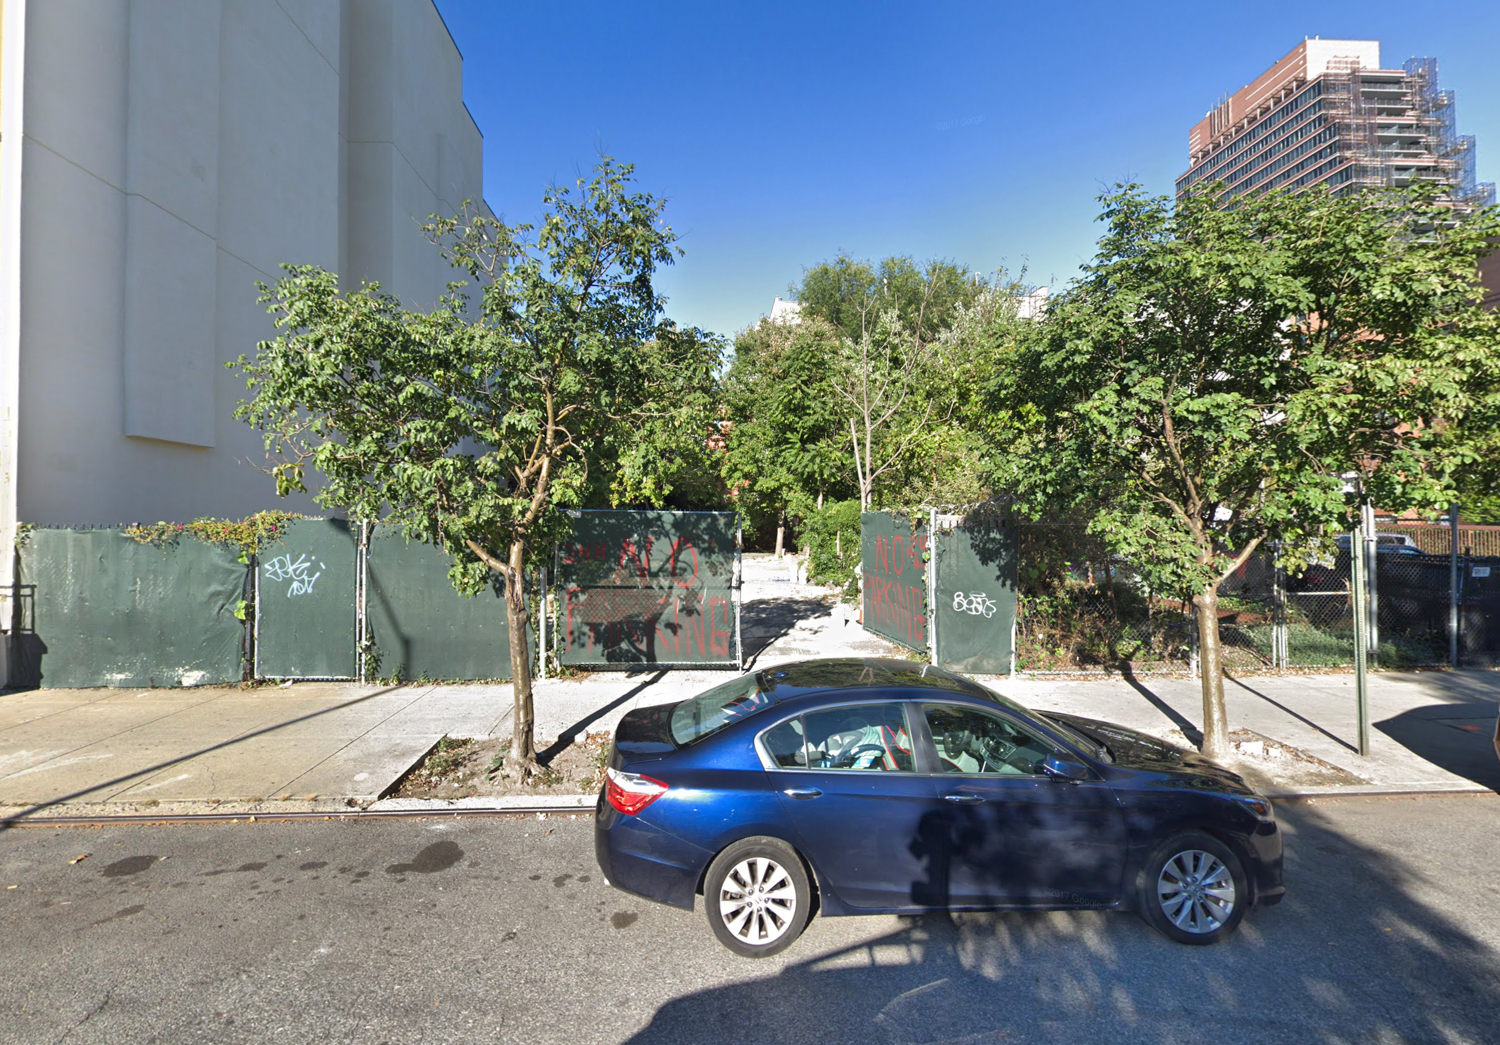 11 West 118th Street, via Google Maps